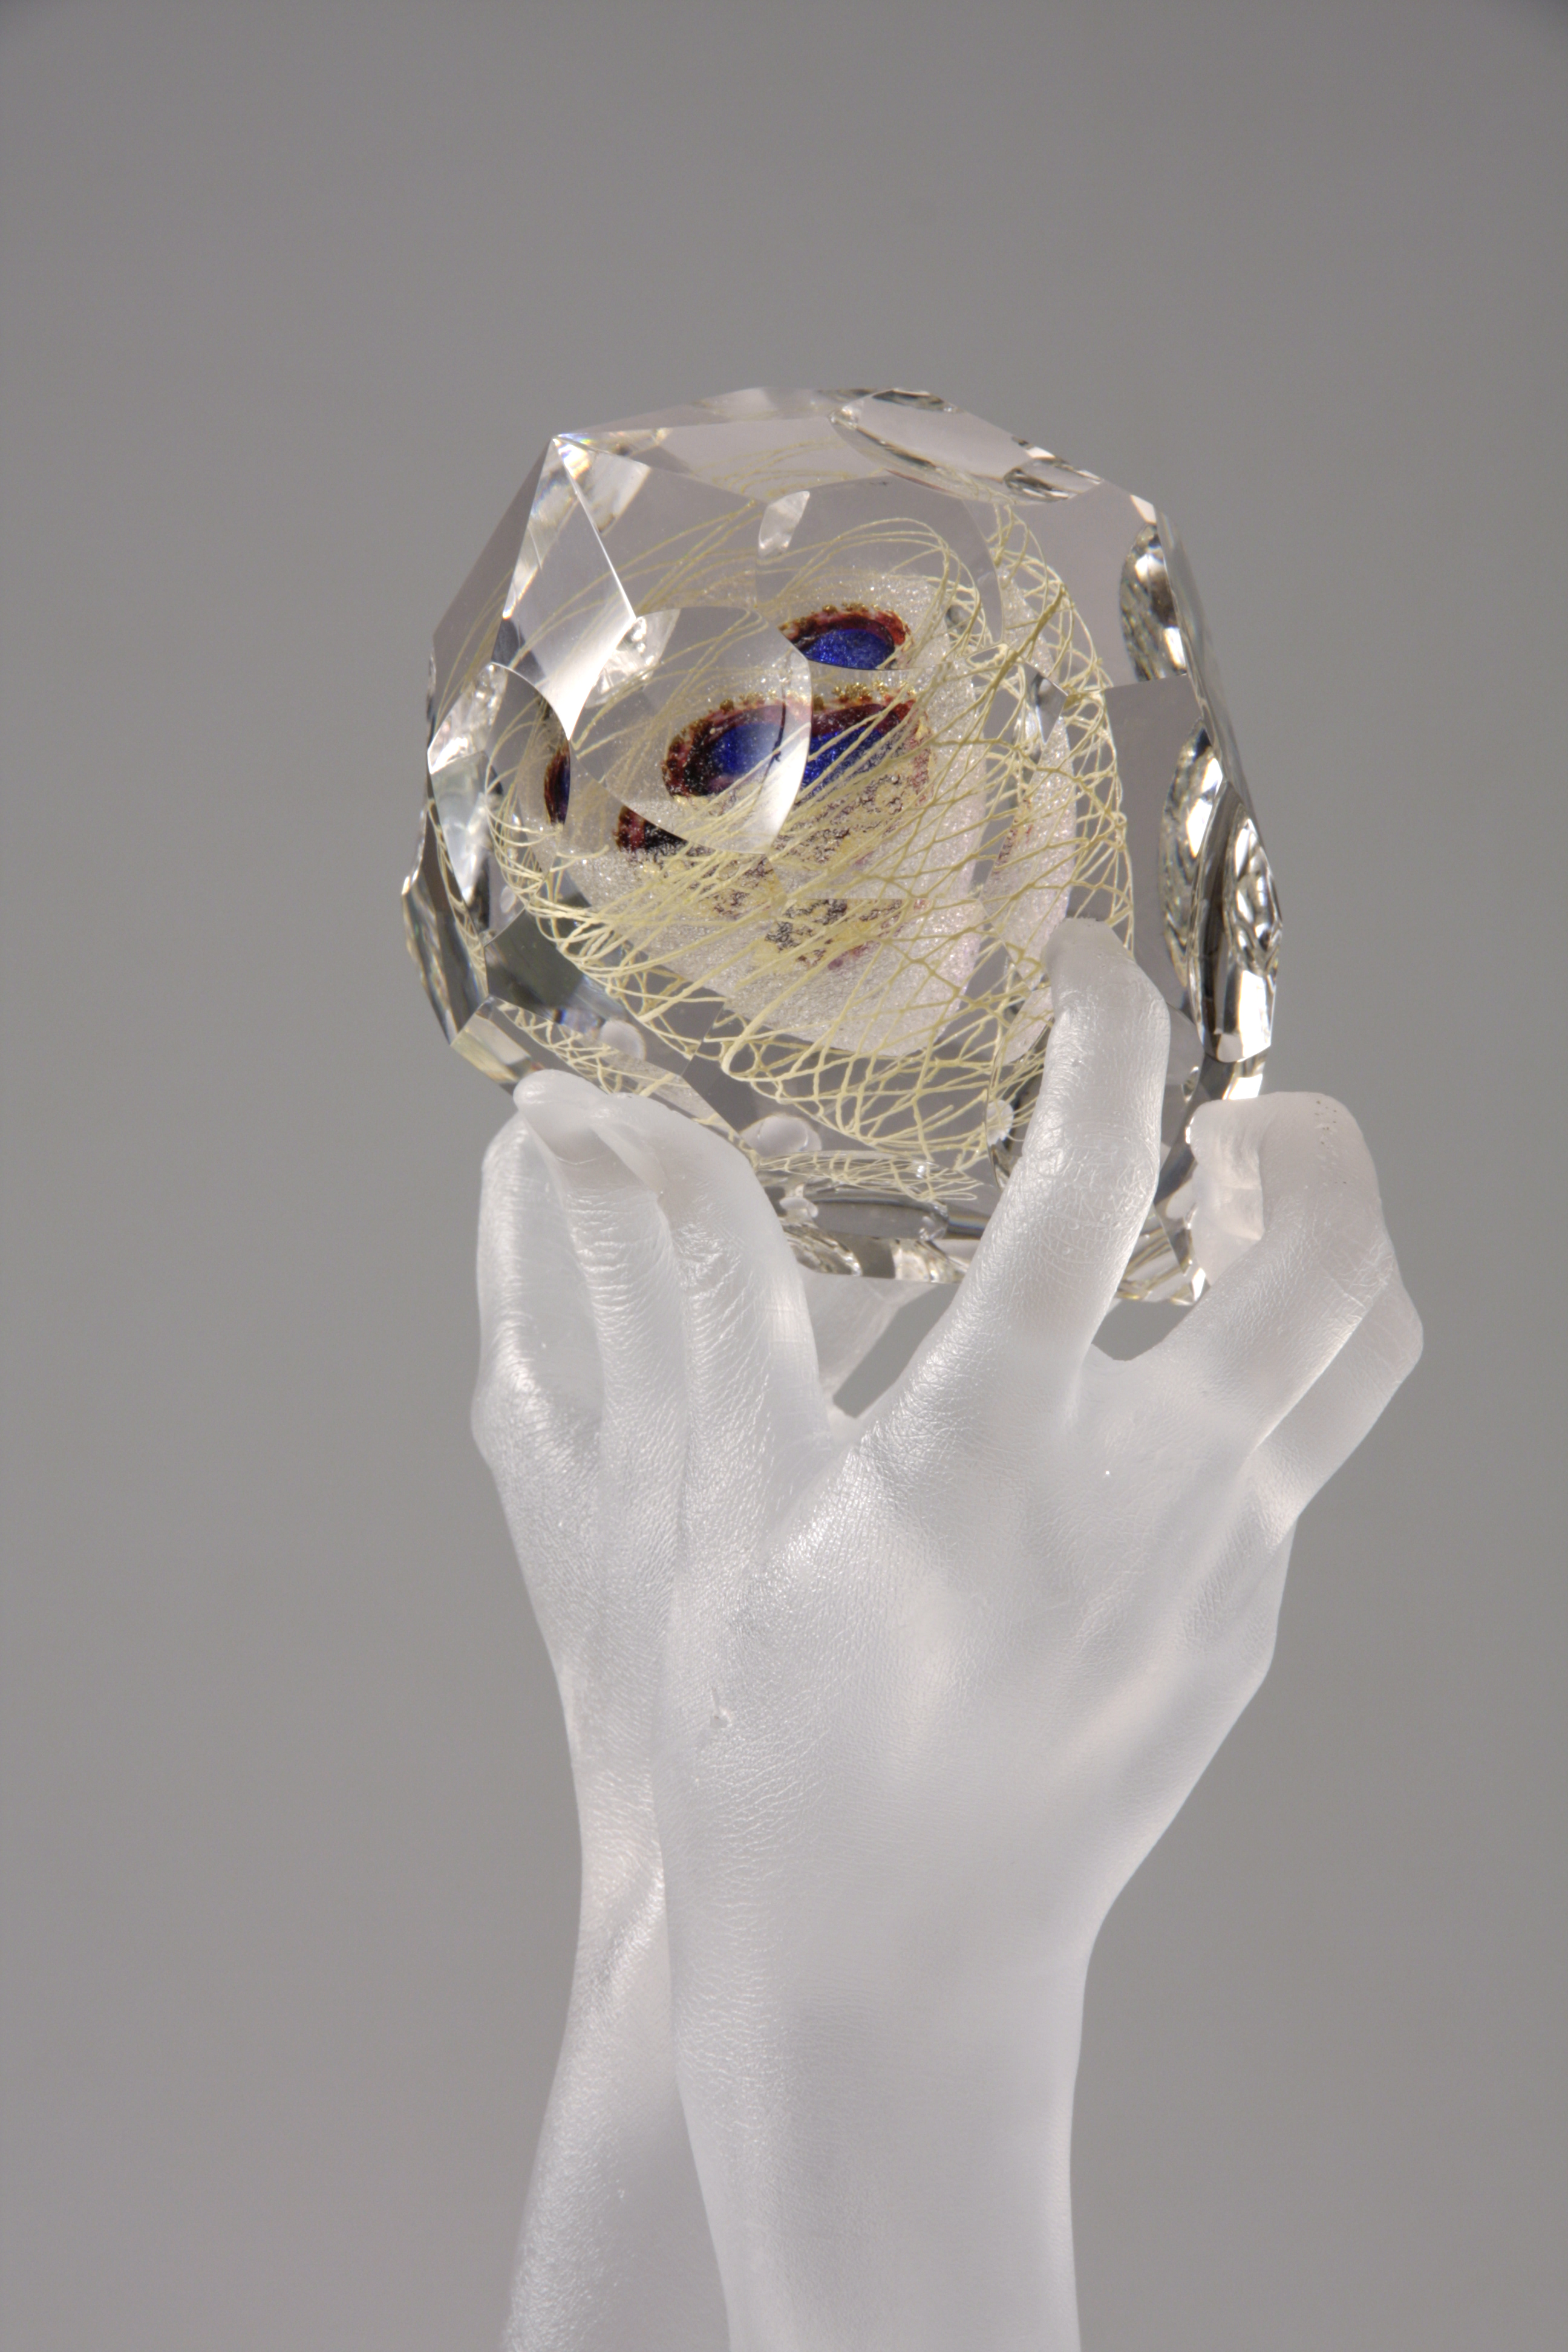 Close-up of sculpture of clear glass hands holding faceted glass gem containing blue, purple, ruby, gold, and mica.